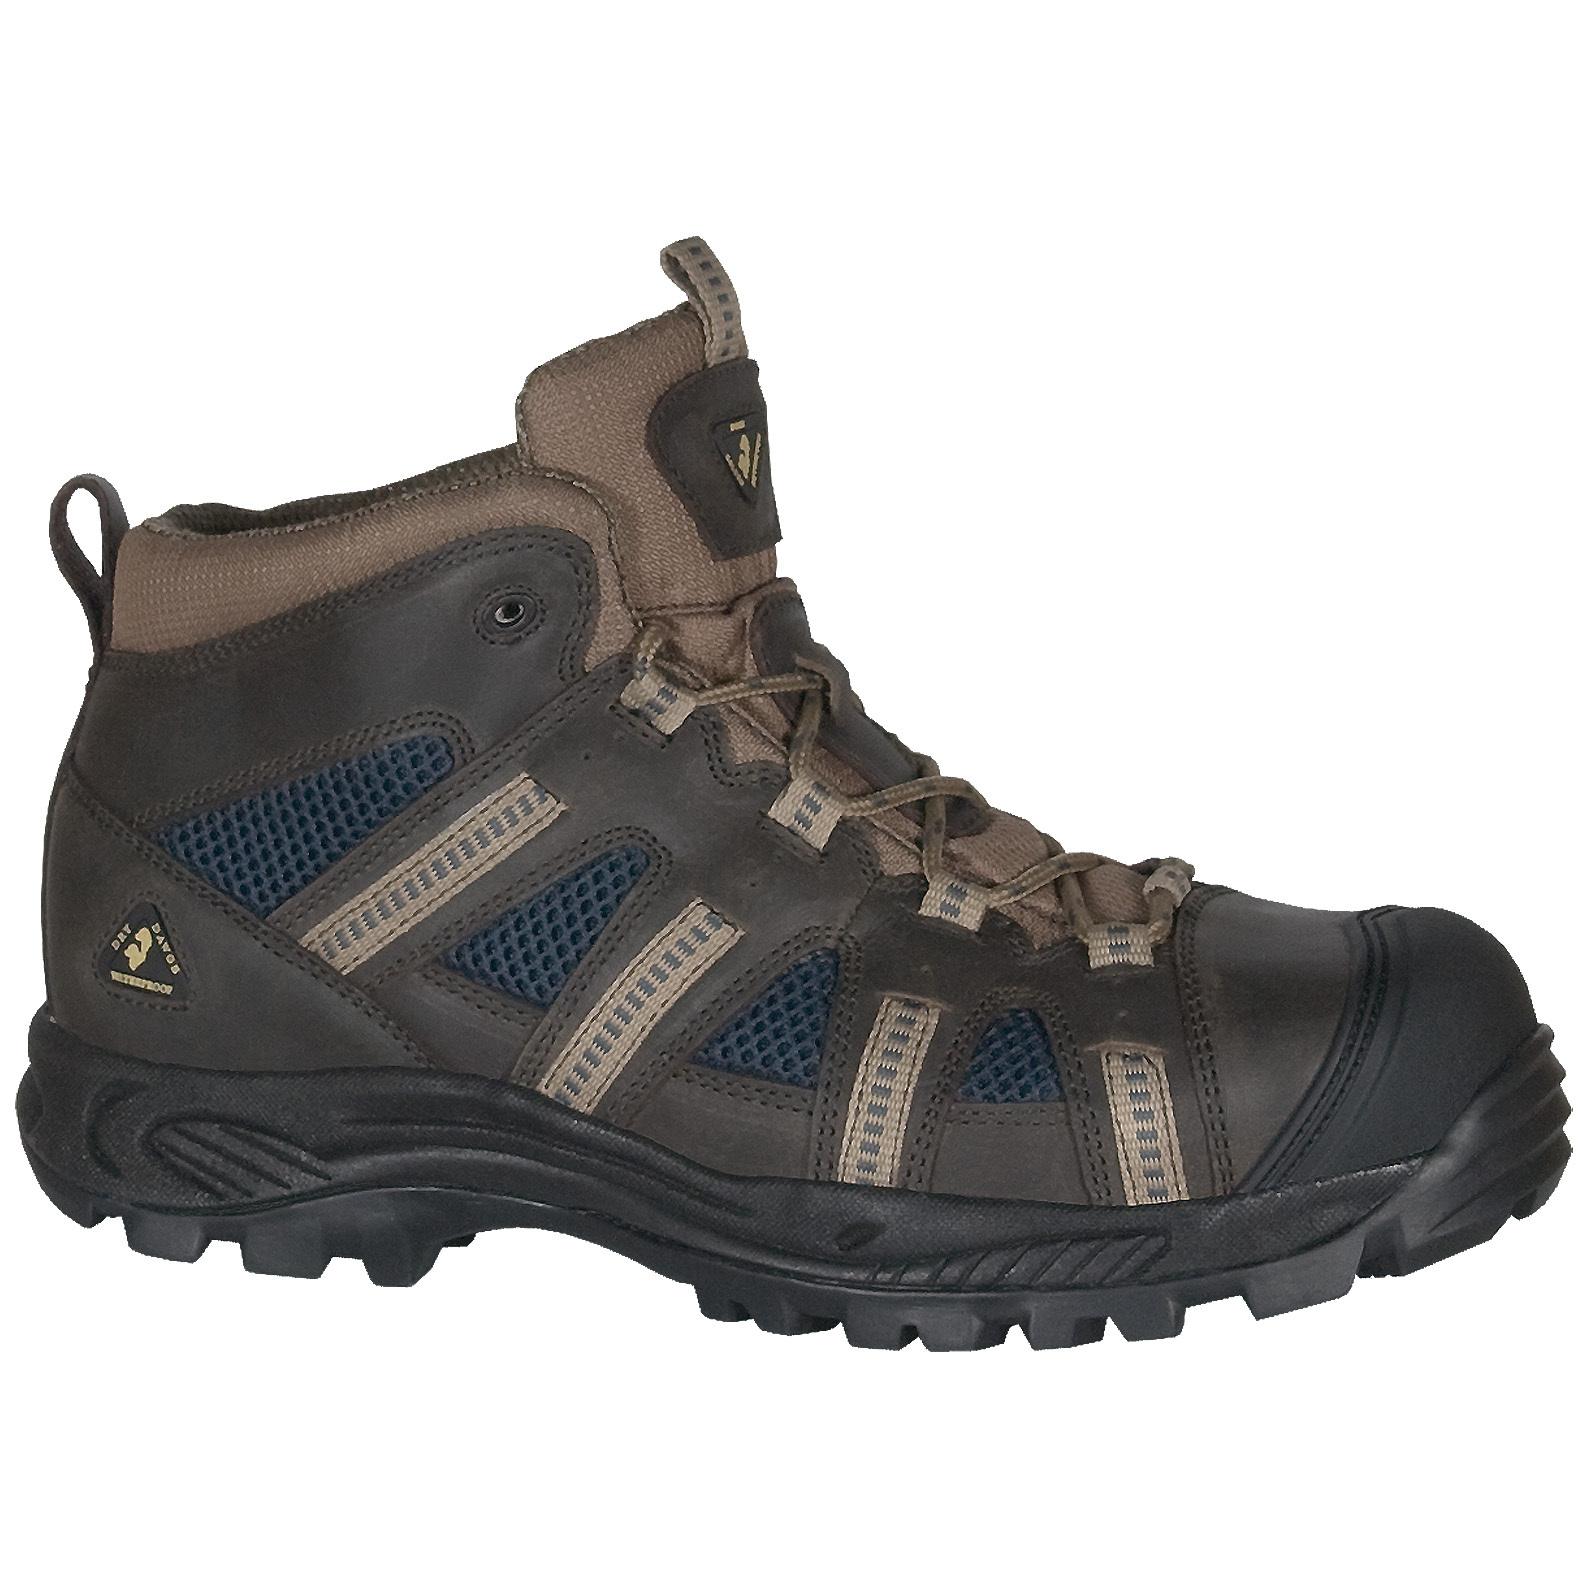 "Golden Retriever WATERPROOF Composite Toe Hiker Work Boots for the ""everywhere man"". No matter where you go, when the going gets tough... as in wet and hazardous... these are the Work Hikers that keep on going! 100% waterproof / breathable, plus an ASTM composite toe to provide the first line of defense against the ""dropsies"".No mere puppies:Tough-but-lightweight leather / mesh uppers Dry Dawgs waterproof / breathable membrane ASTM F2413-11 EH composite safety toe protection Moisture-wicking ECO PU insole with Aegis antimicrobial treatment to inhibit odor and bacteria NRLYTM Flex oil, slip and heat-resistant rubber outsole Flex PU cushion midsole 100% non-metallic. Each approx. 30 ozs. State Size and Width, as available in the Shopping Cart. - $119.99"